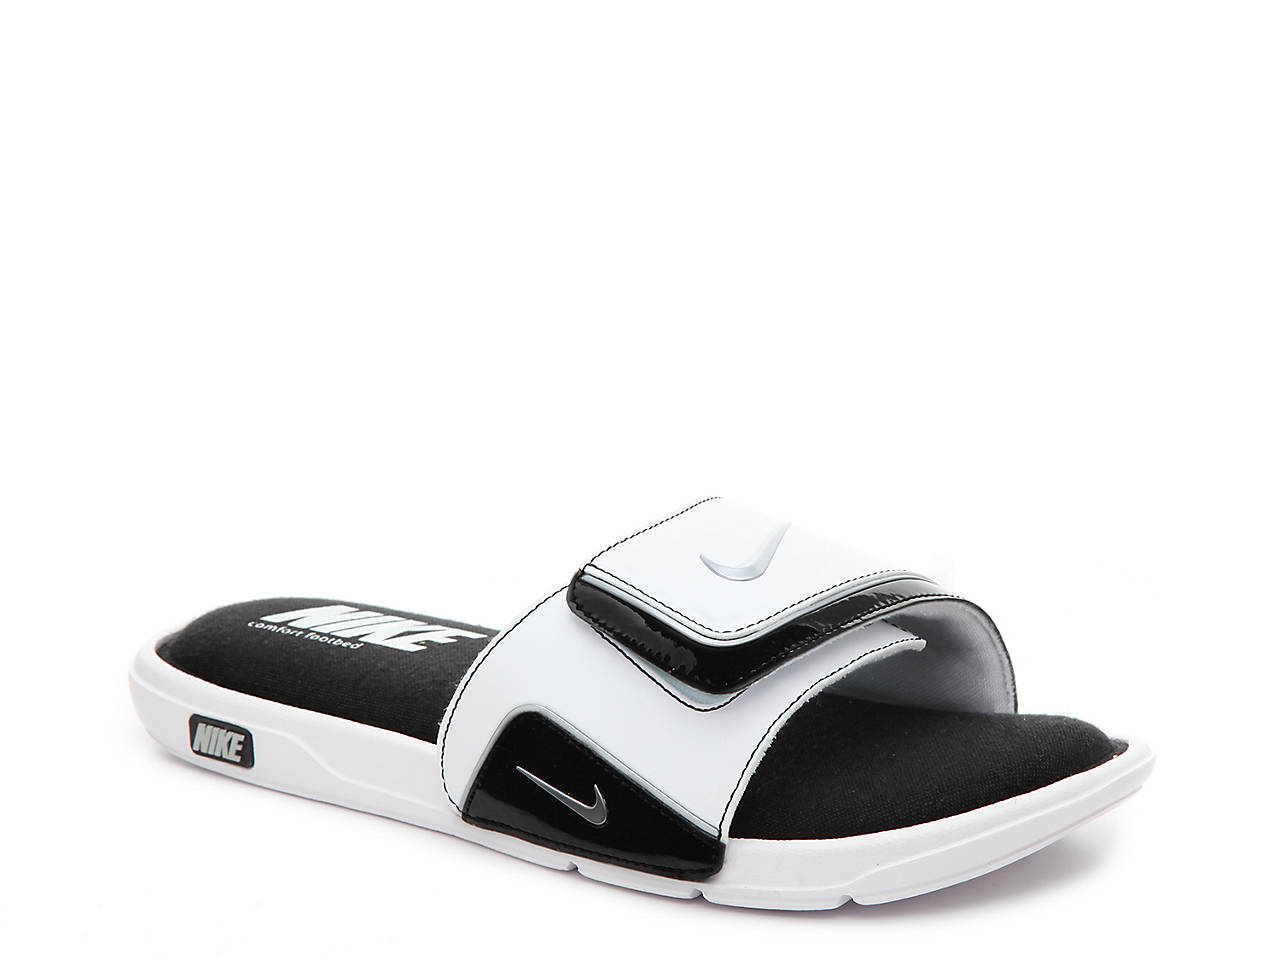 superior slide shoes p quality puma nike sale sandal menpuma for clearance men comforter comfort salesuperior